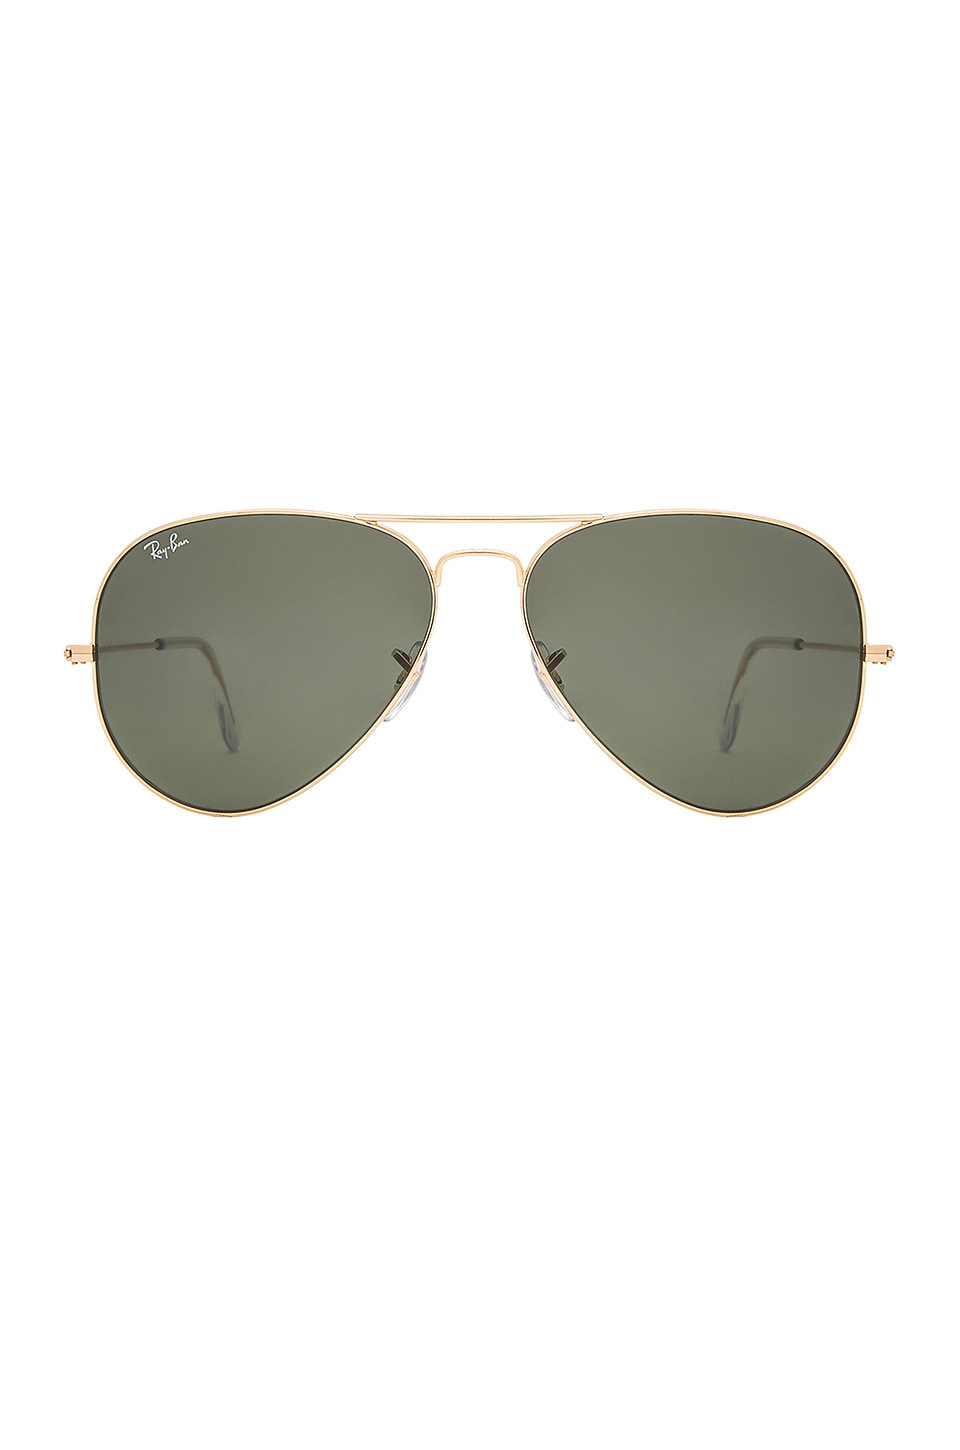 Ray-Ban LUNETTES AVIATEUR LARGE CLASSIC